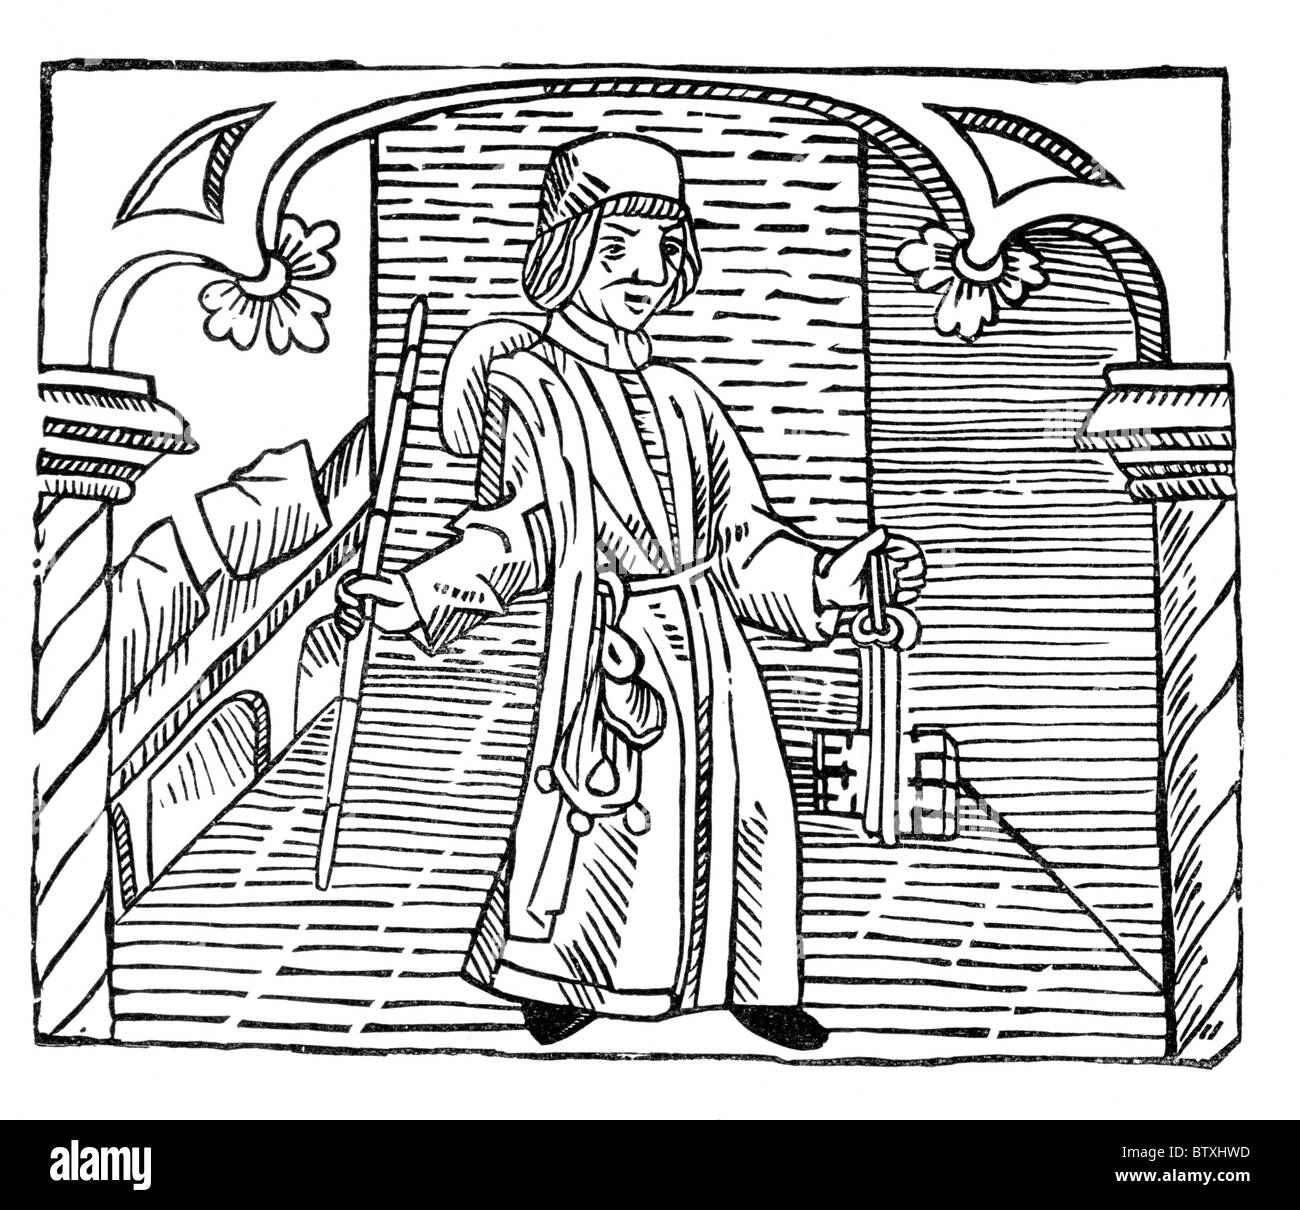 The Toll Gatherer, form William Caxton's 'Game and Playe of the Chesse' published in 1474; Black and - Stock Image